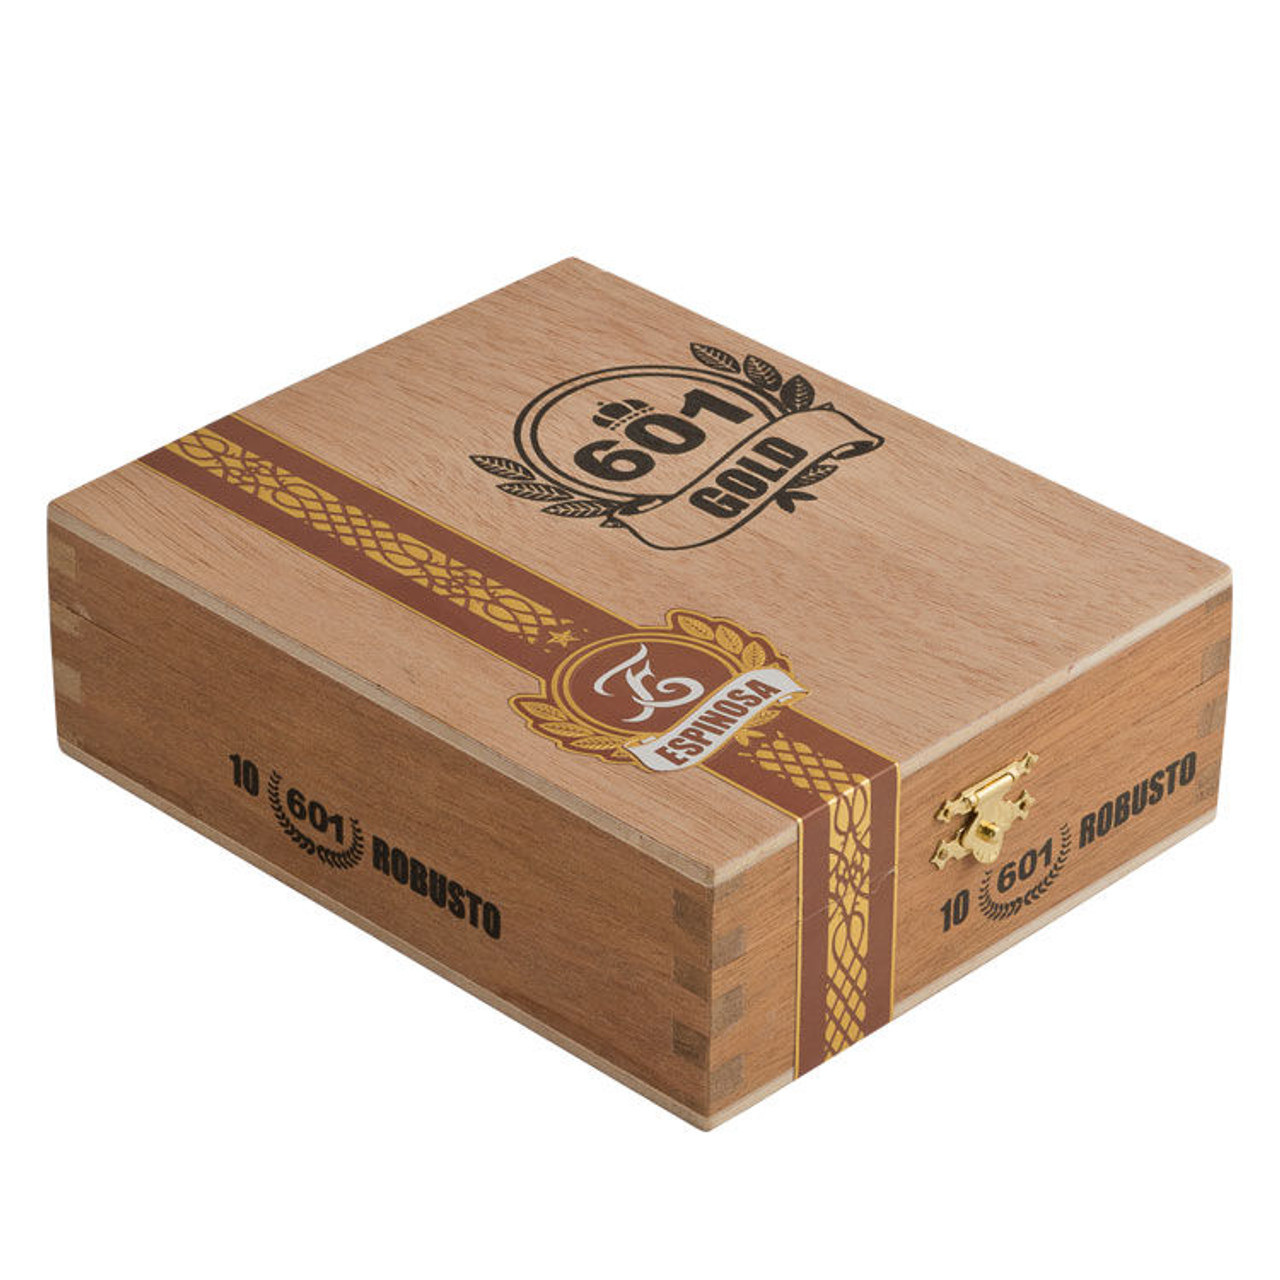 601 Gold Label Robusto Cigars - 5 x 50 (Box of 10)